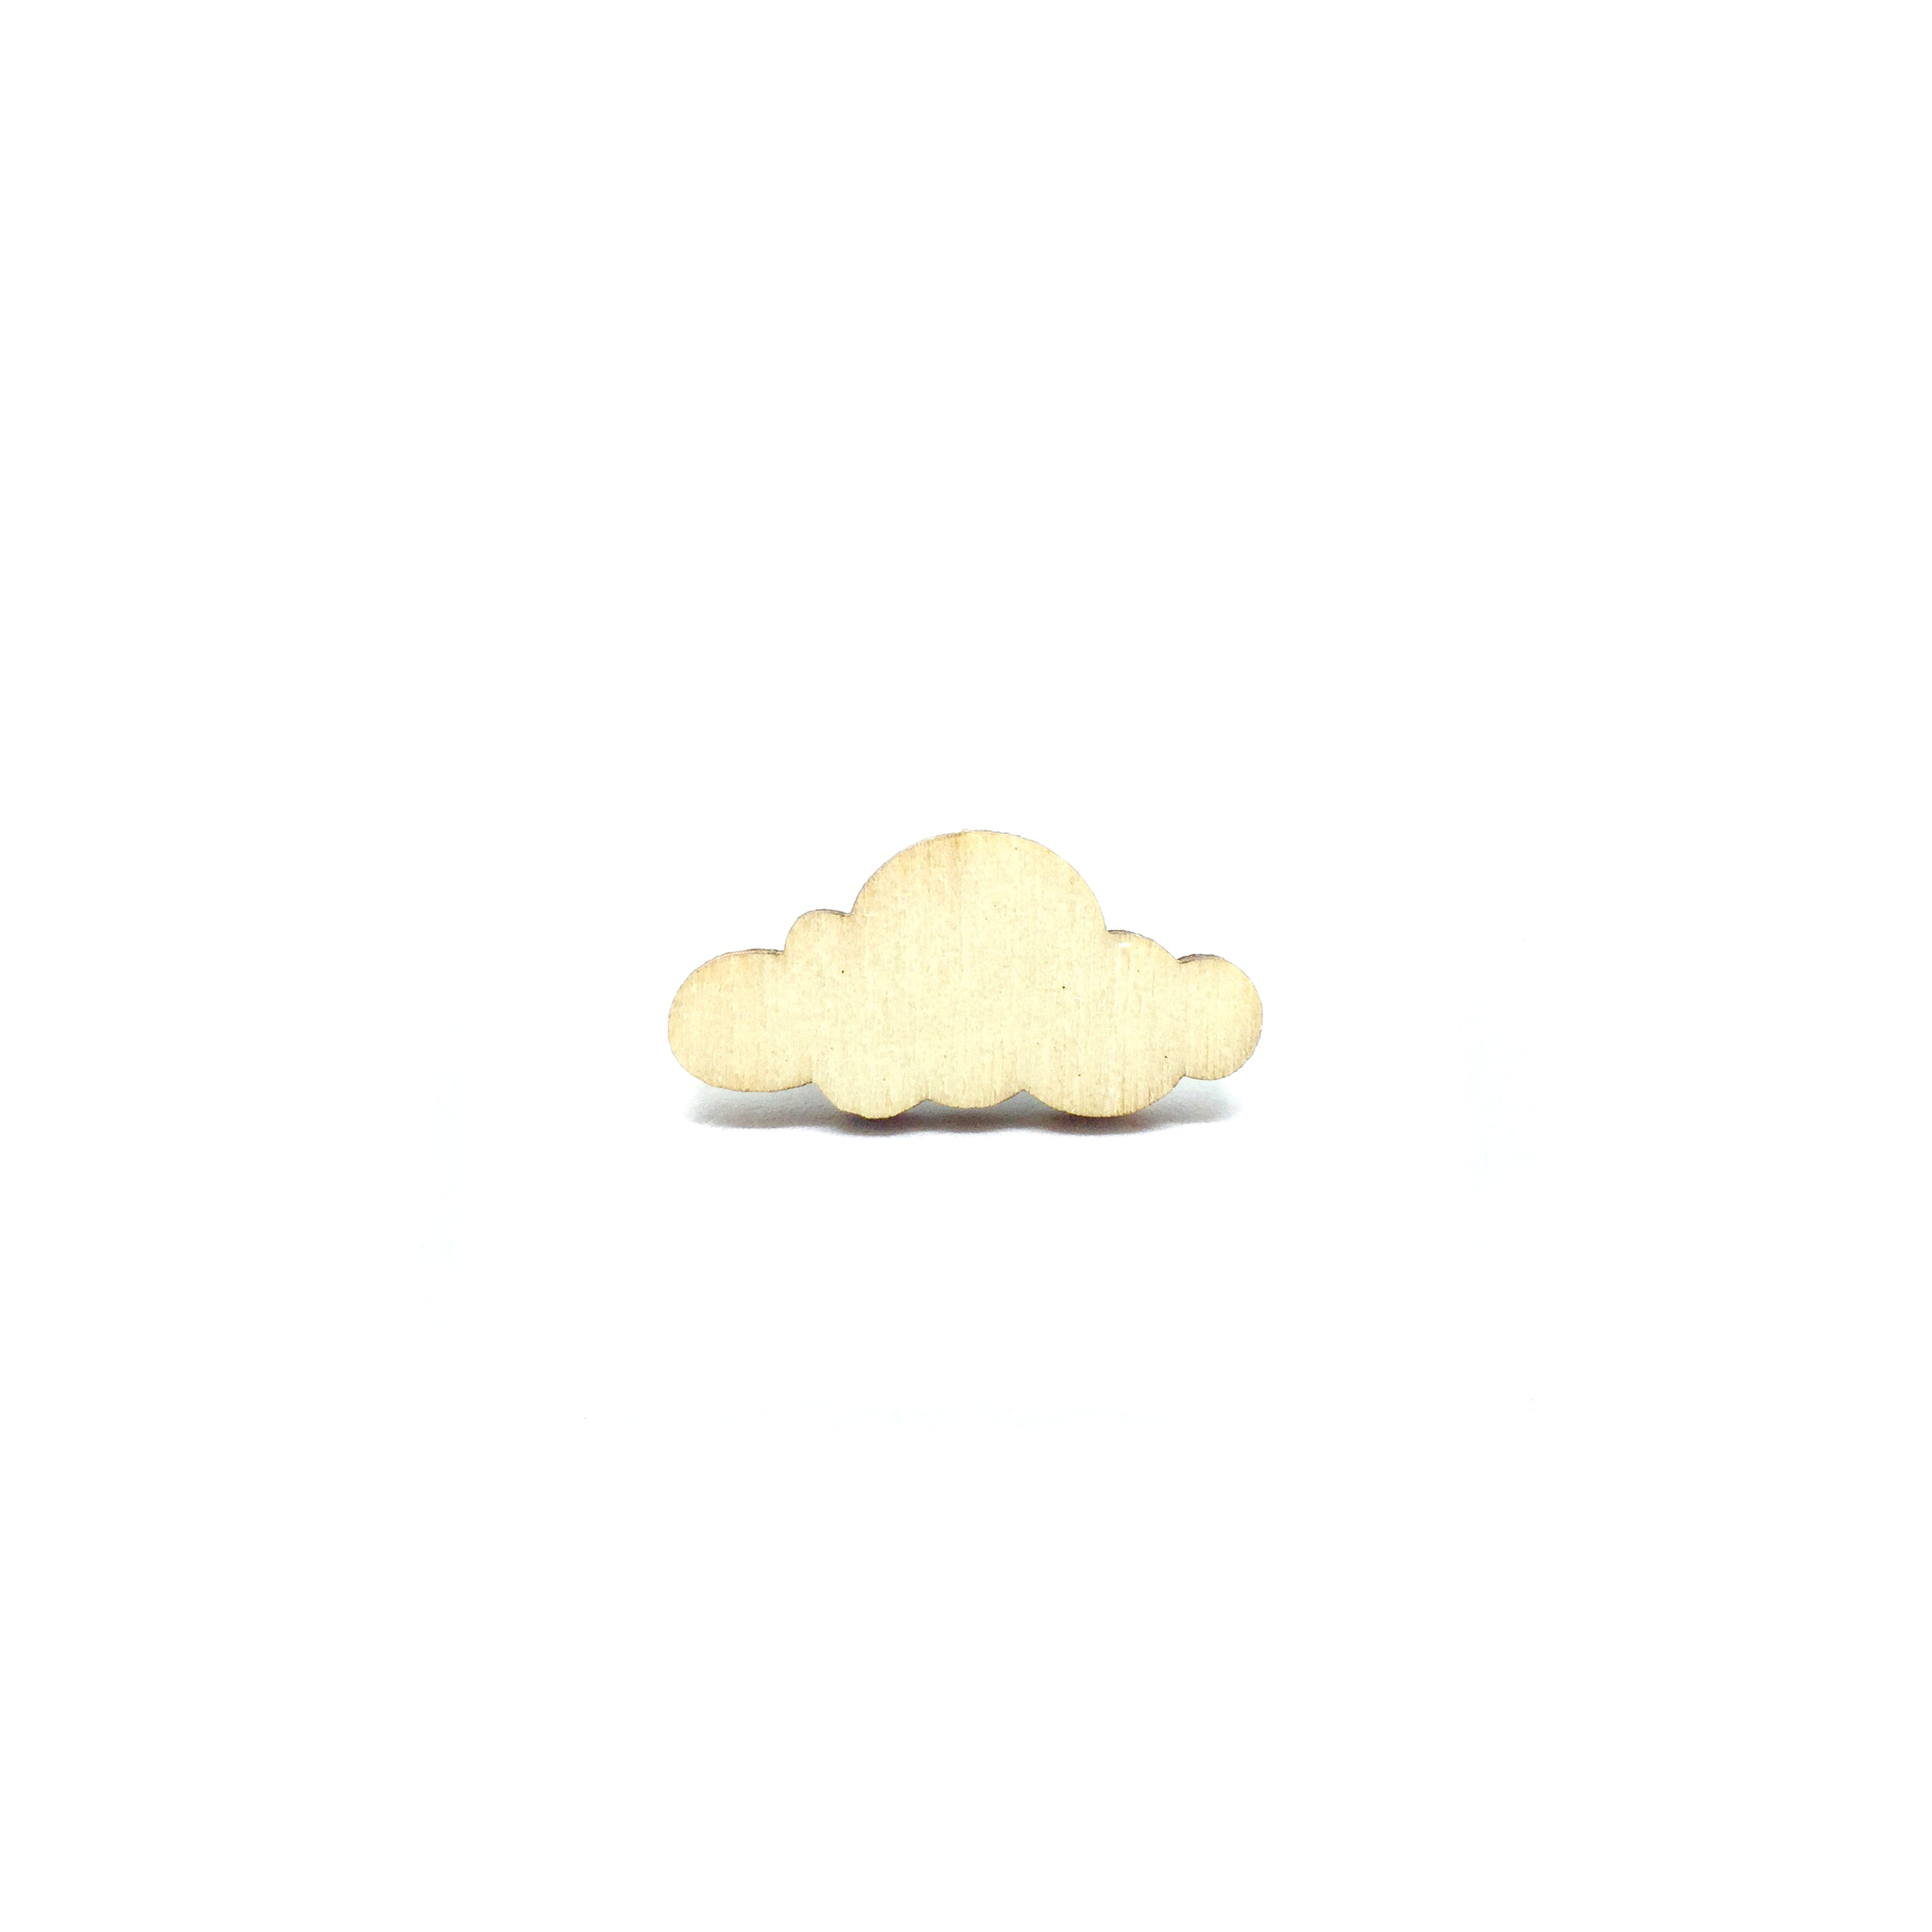 Sunny Clouds Wooden Brooch Pin